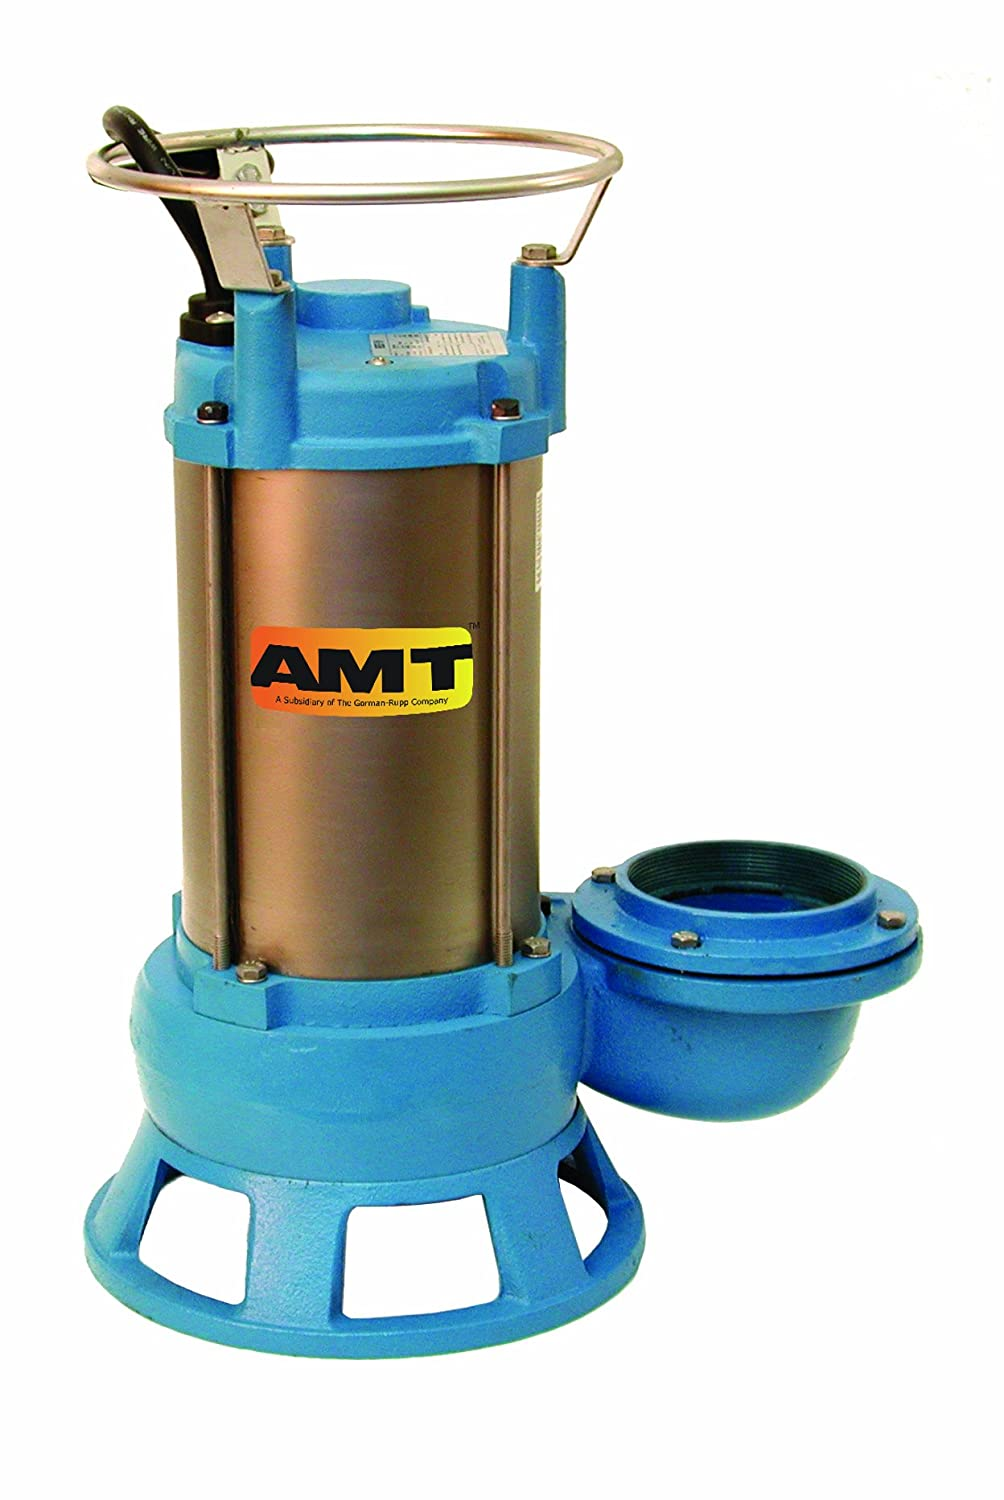 AMT 576B-95 CI Submersible Shredder Sewage Pump, Double Mechanical Seal, 2